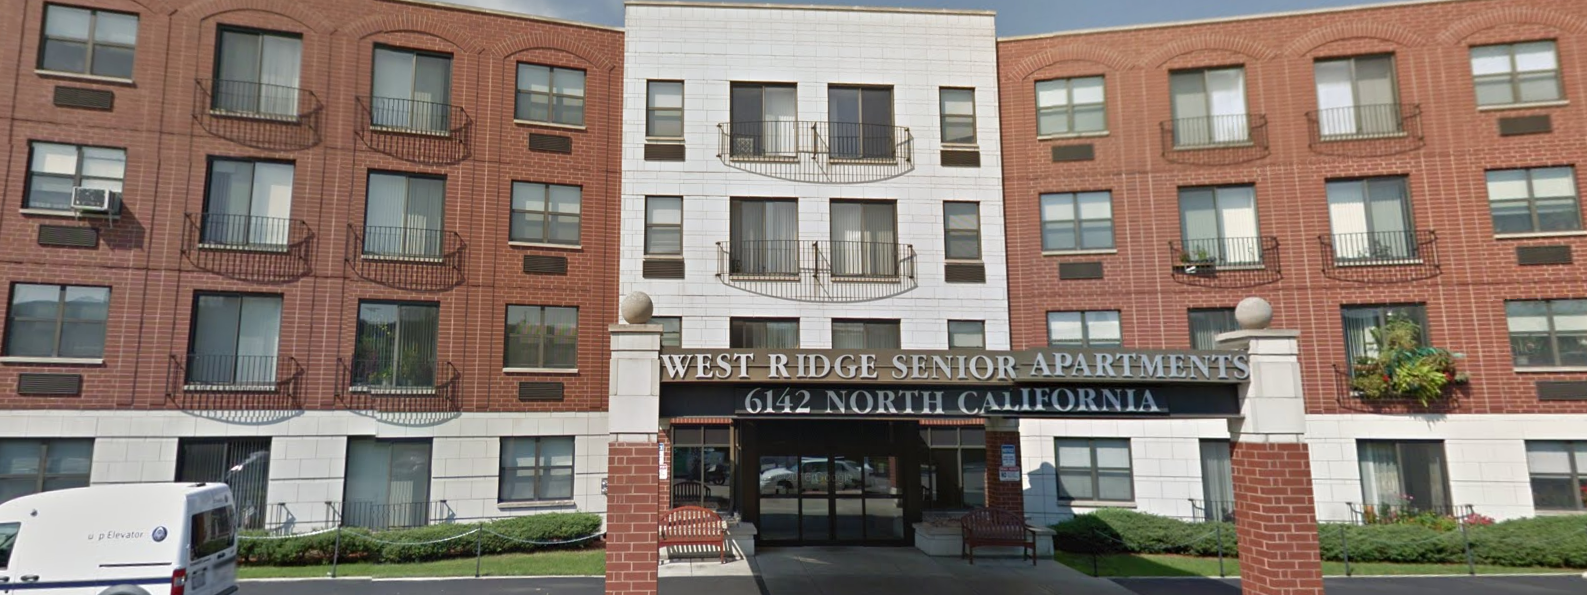 West Ridge Senior Apartments